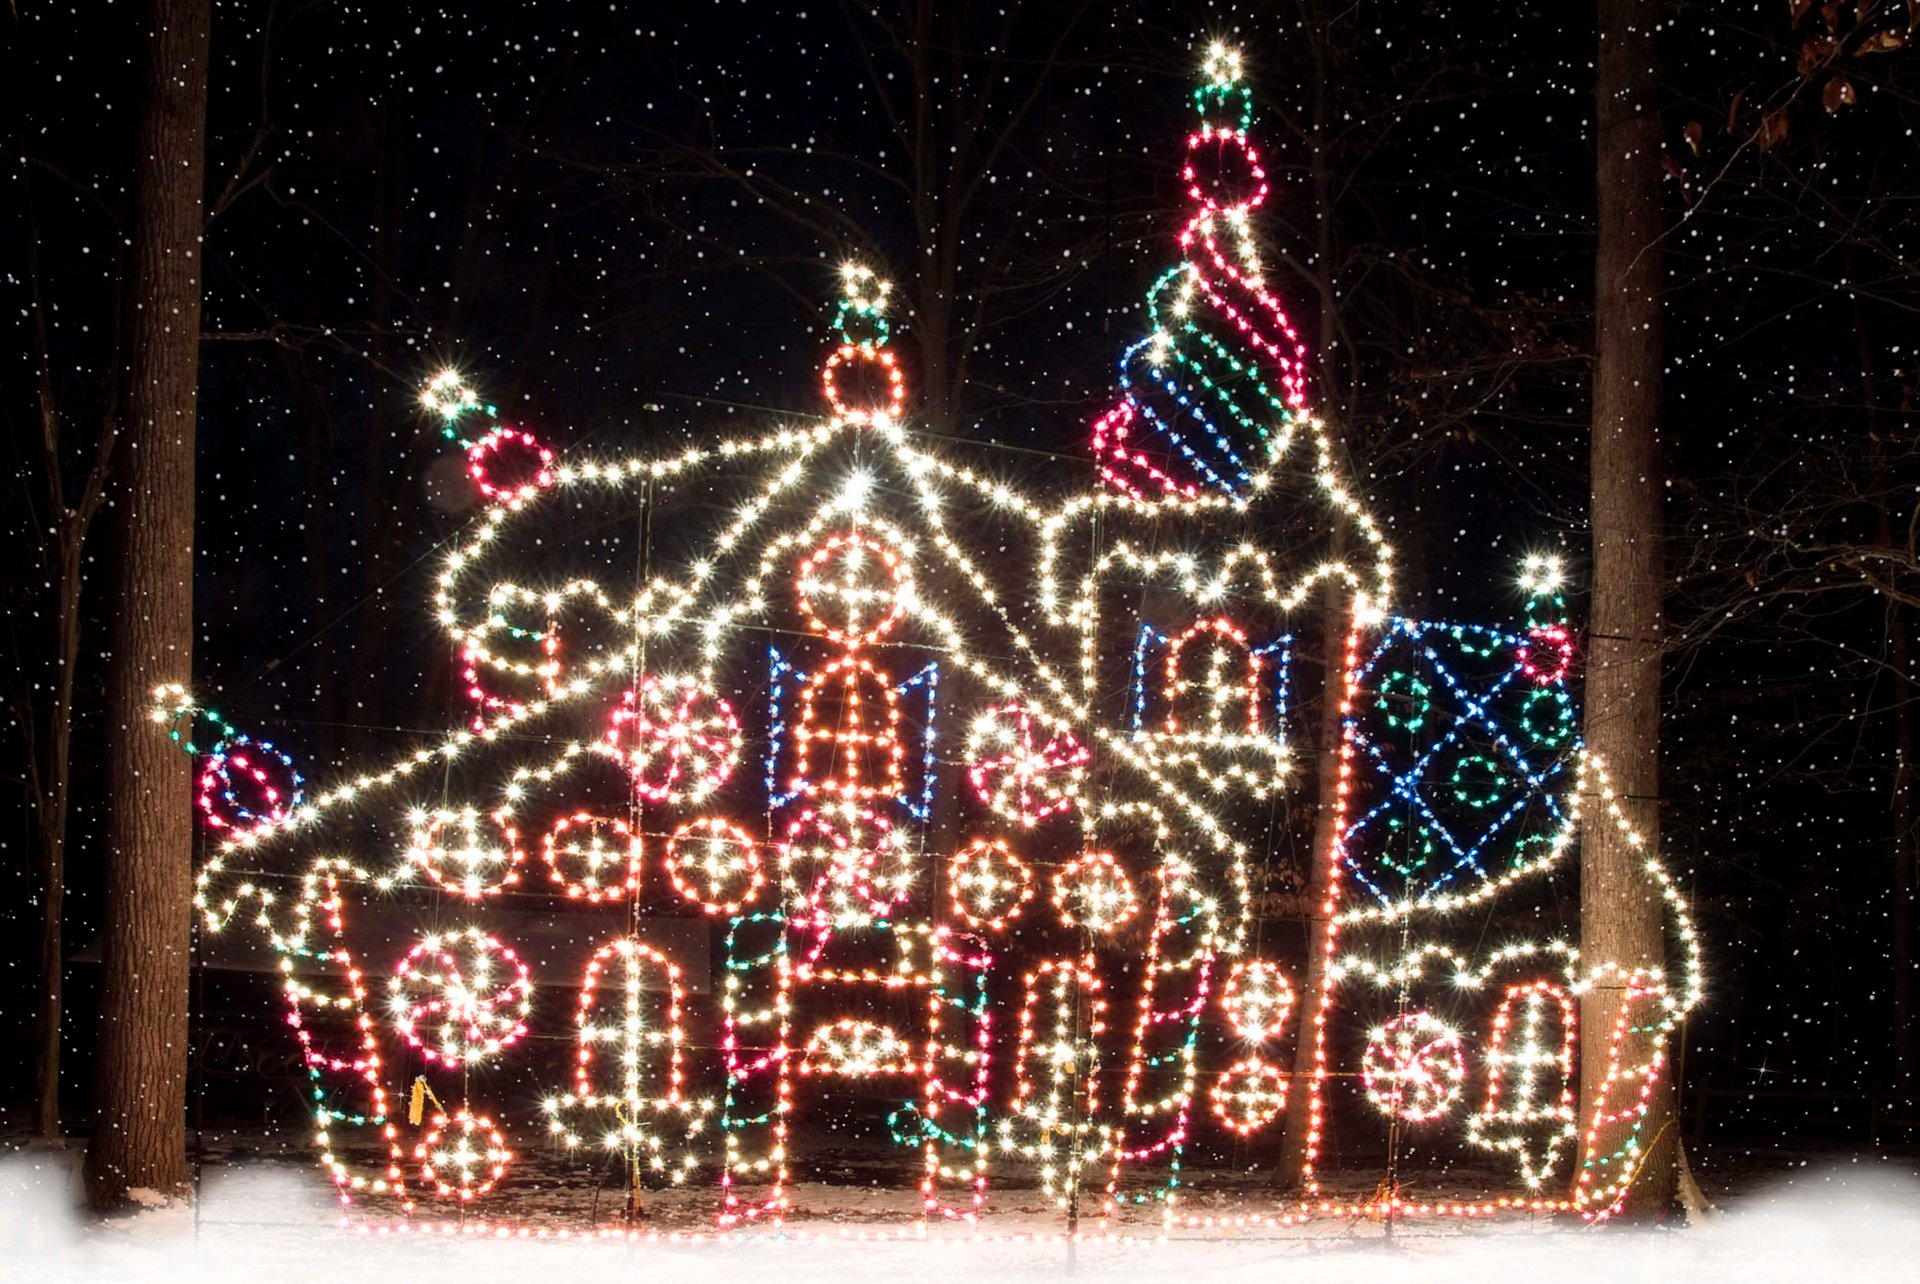 Best time for Winter Festival of Lights at Watkins Park  in Maryland 2020